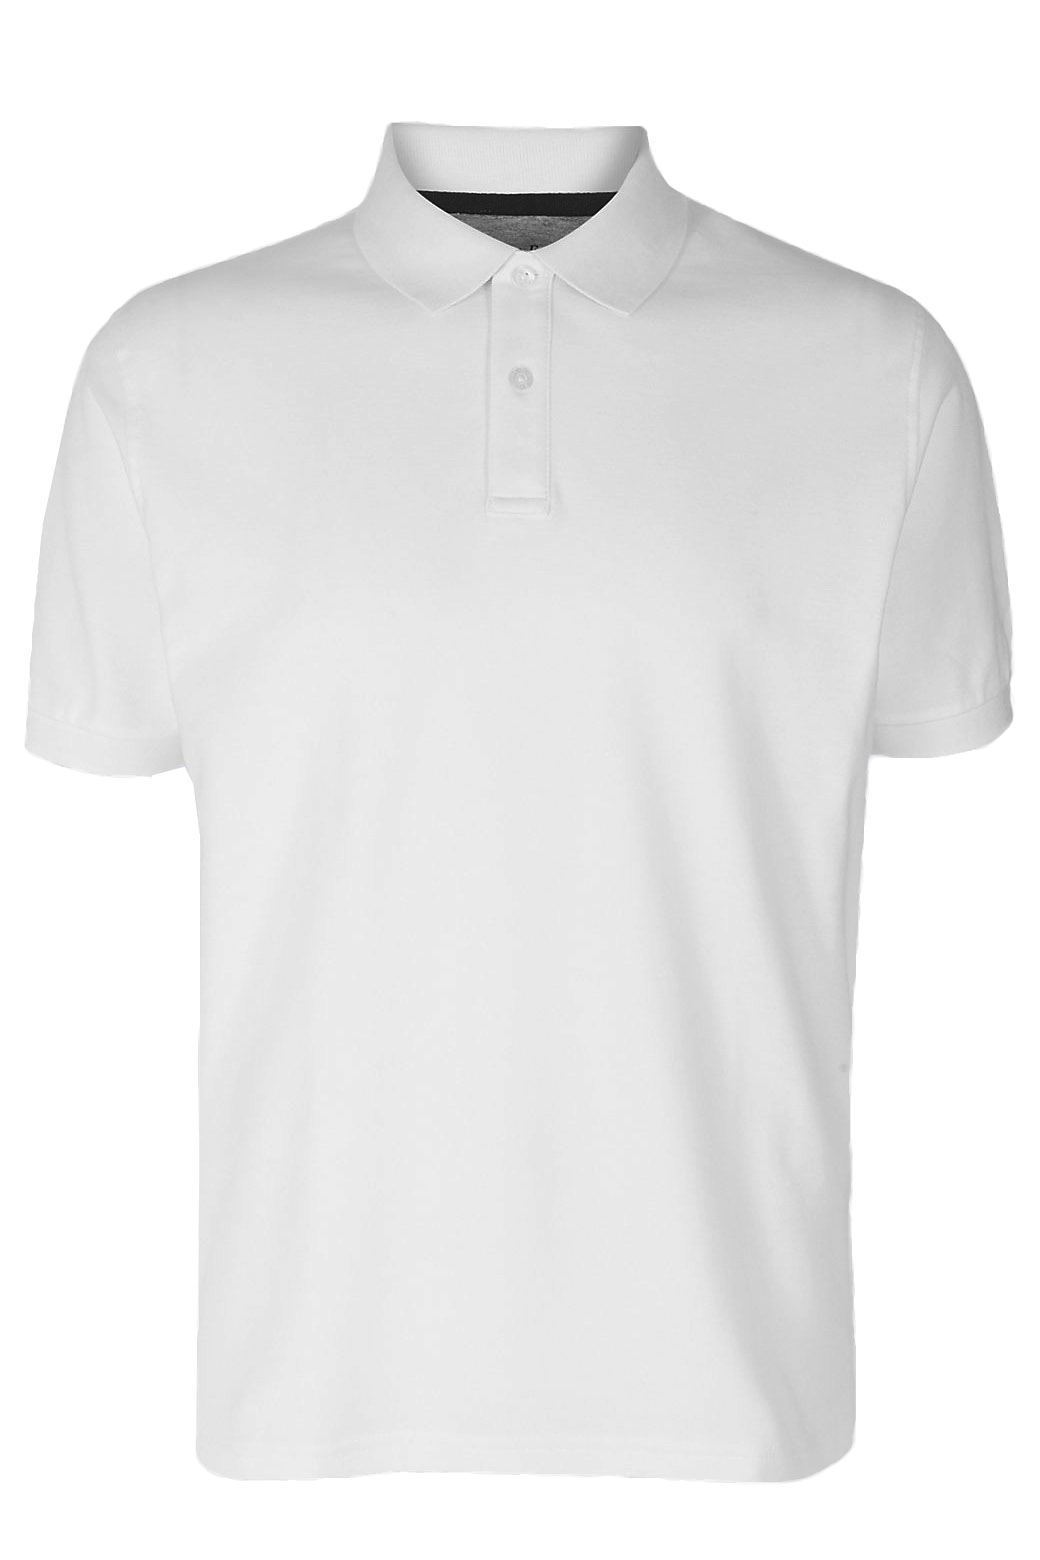 MARKS-amp-SPENCER-Mens-Classic-Cotton-Polo-Shirt-M-amp-S-All-Colours-and-Large-Sizes thumbnail 26